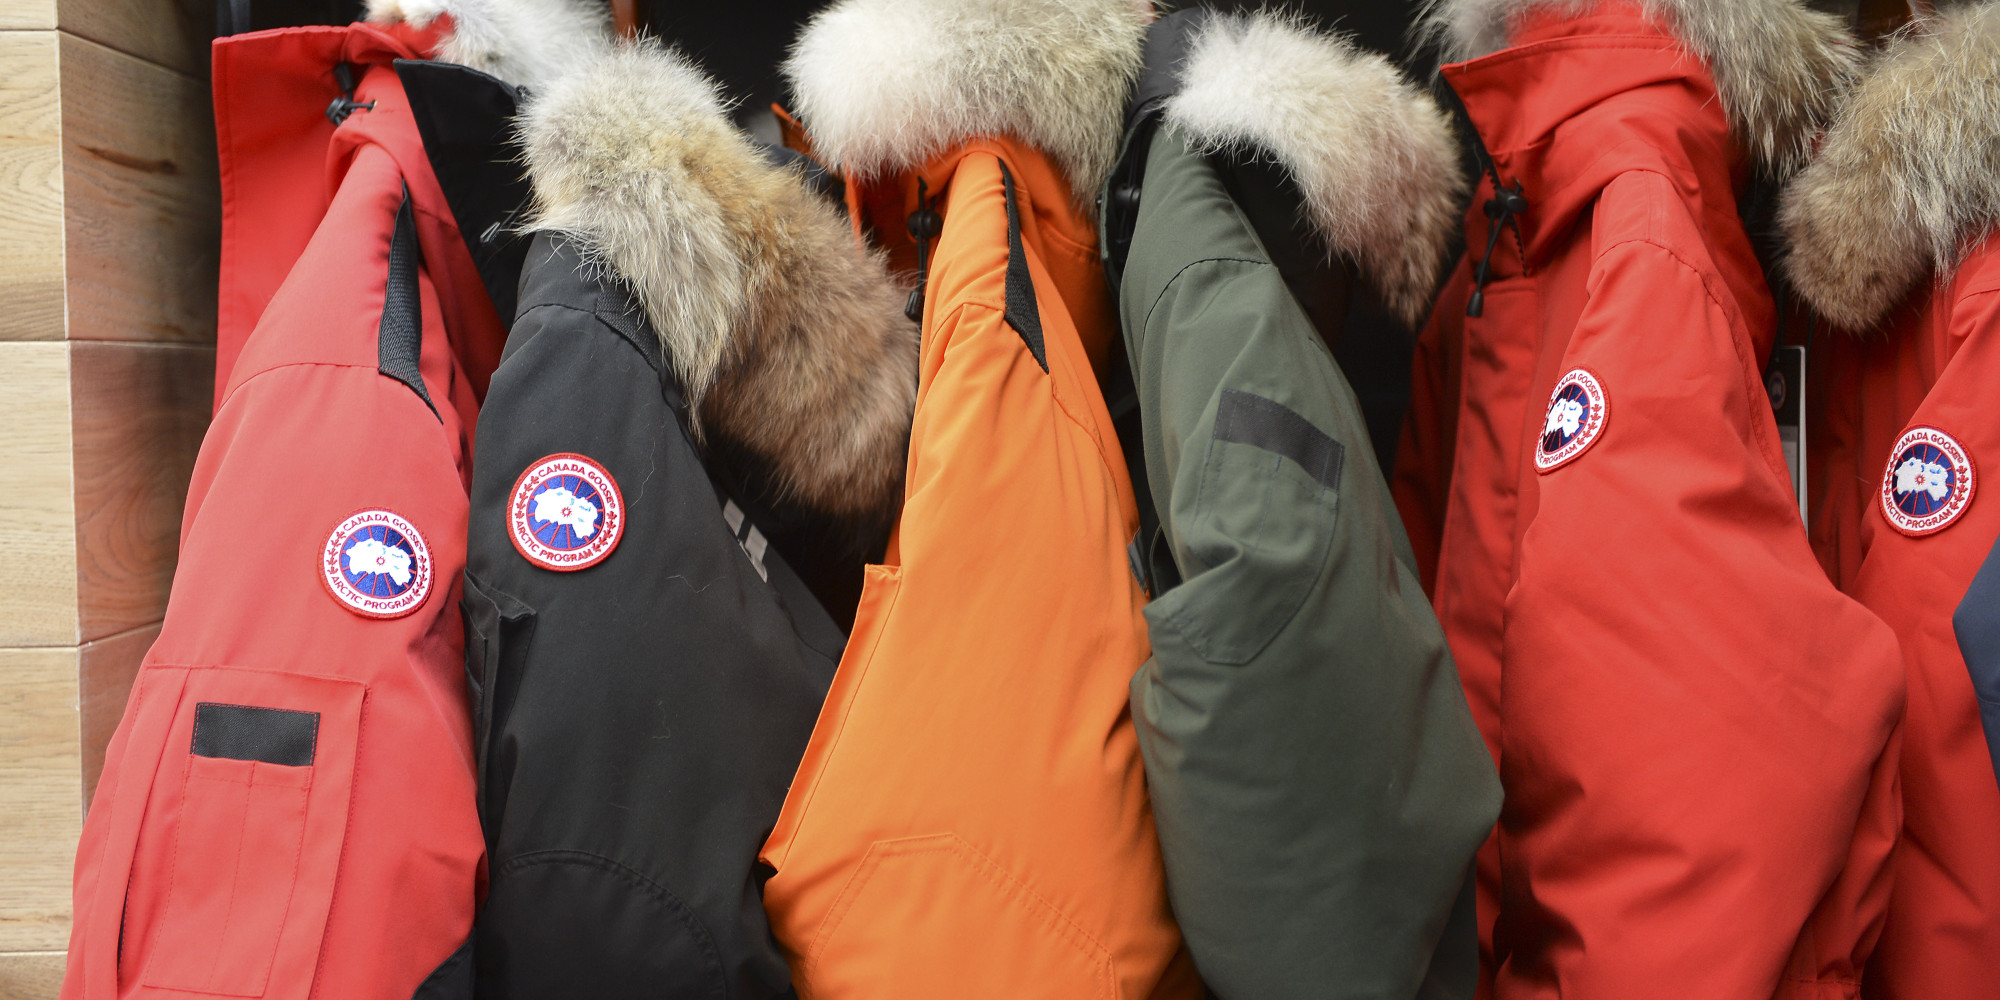 Canada Goose Outerwear Company Is Flying High